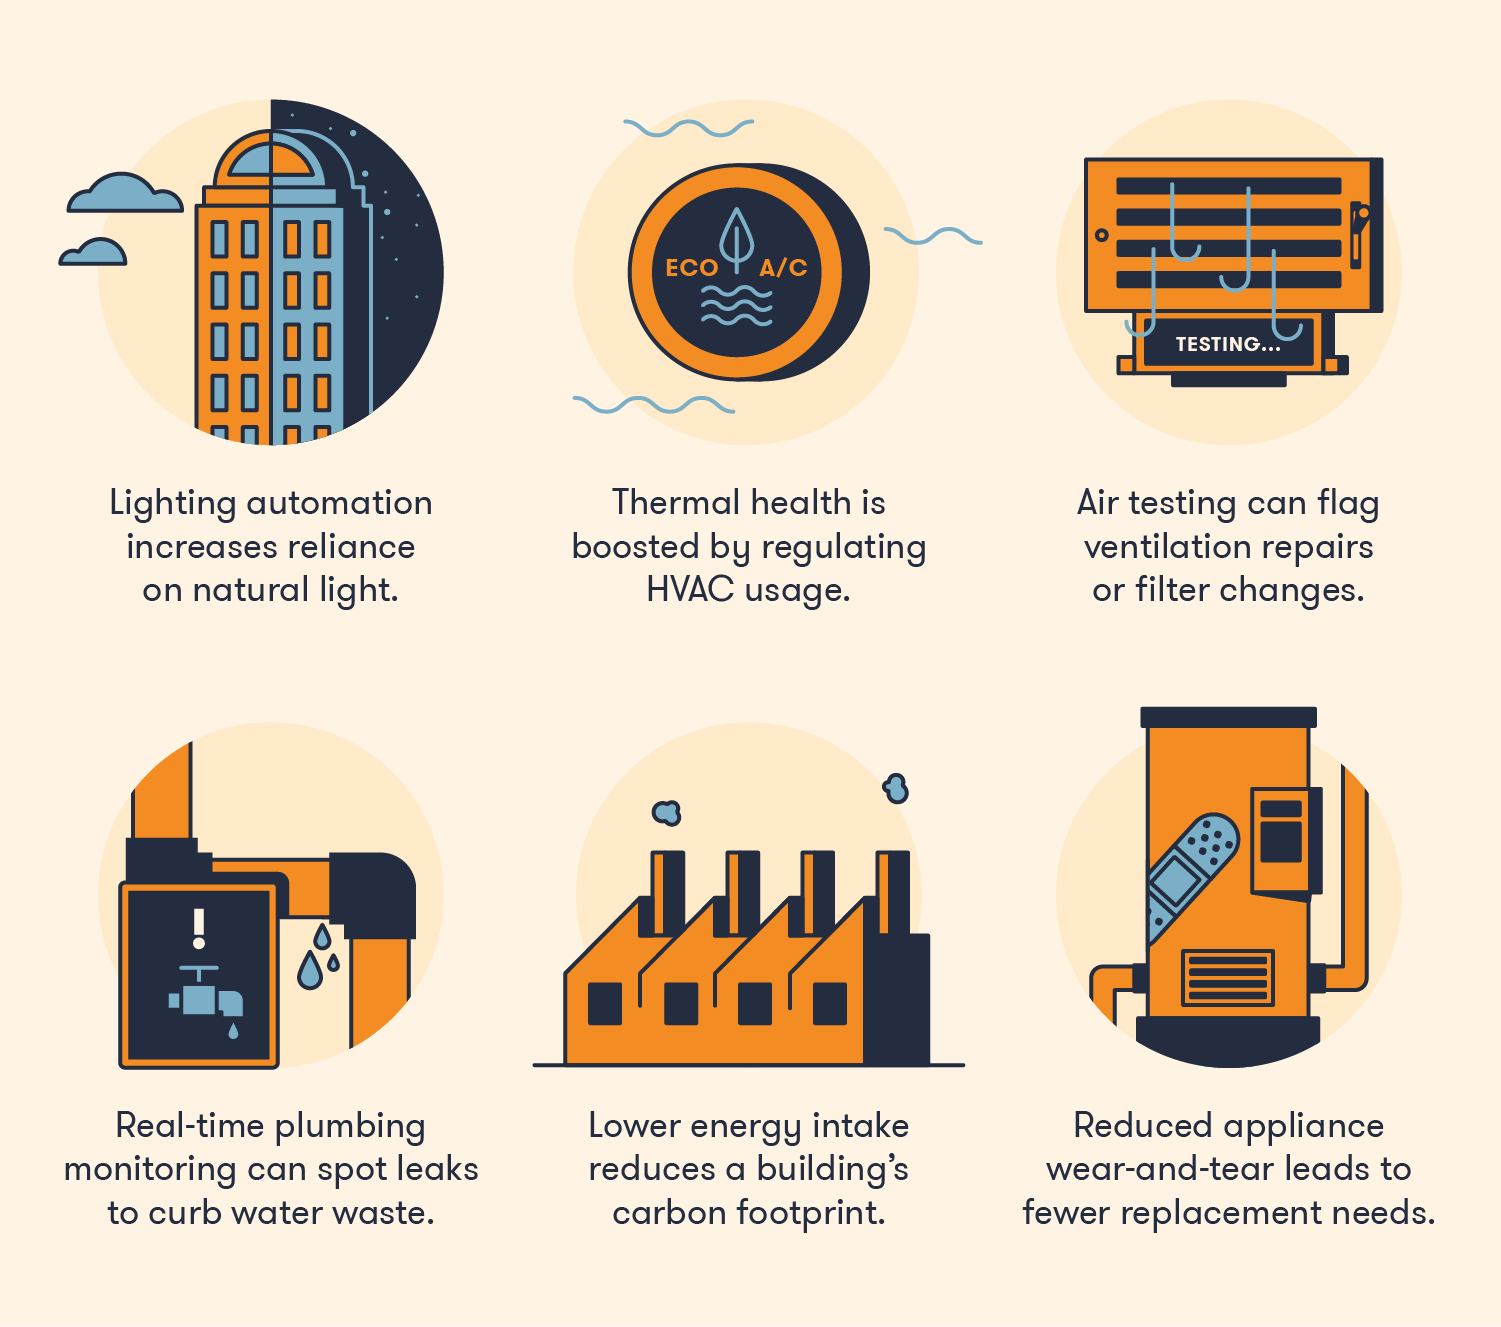 6 eco-friendly benefits of building automation systems